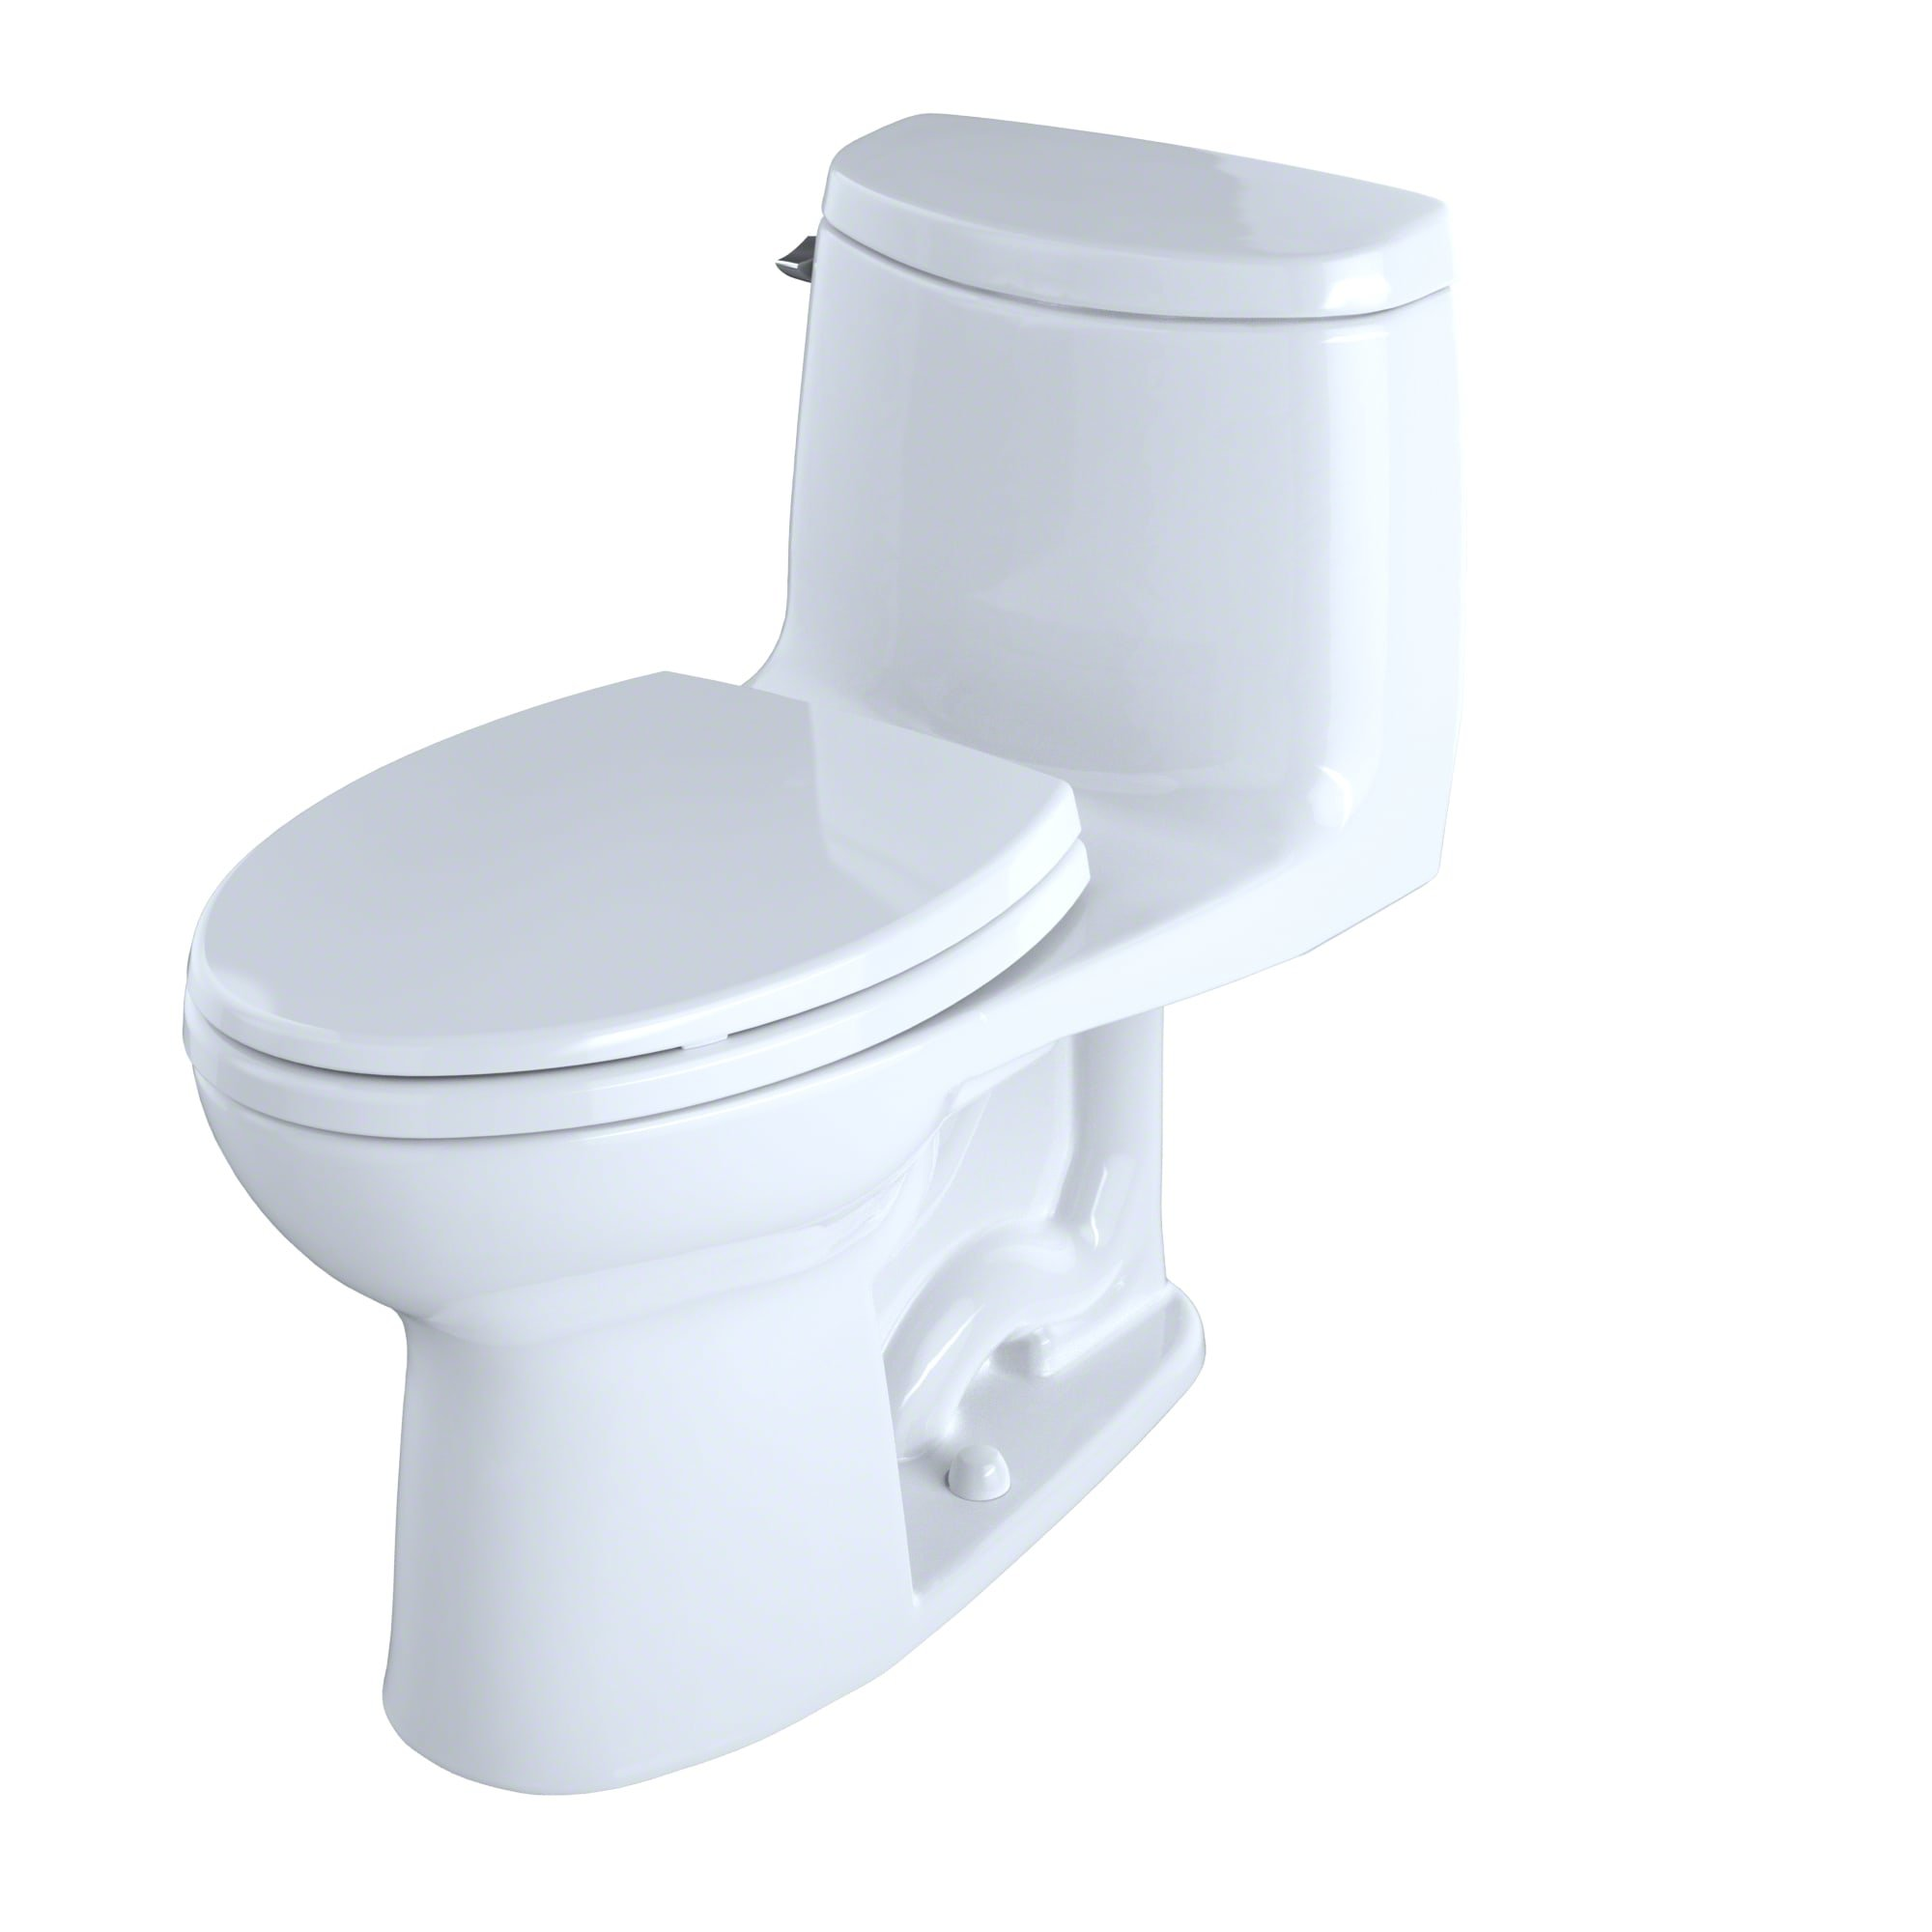 TOTO Ultramax II Review: Is it worth buying? - Shop Toilet